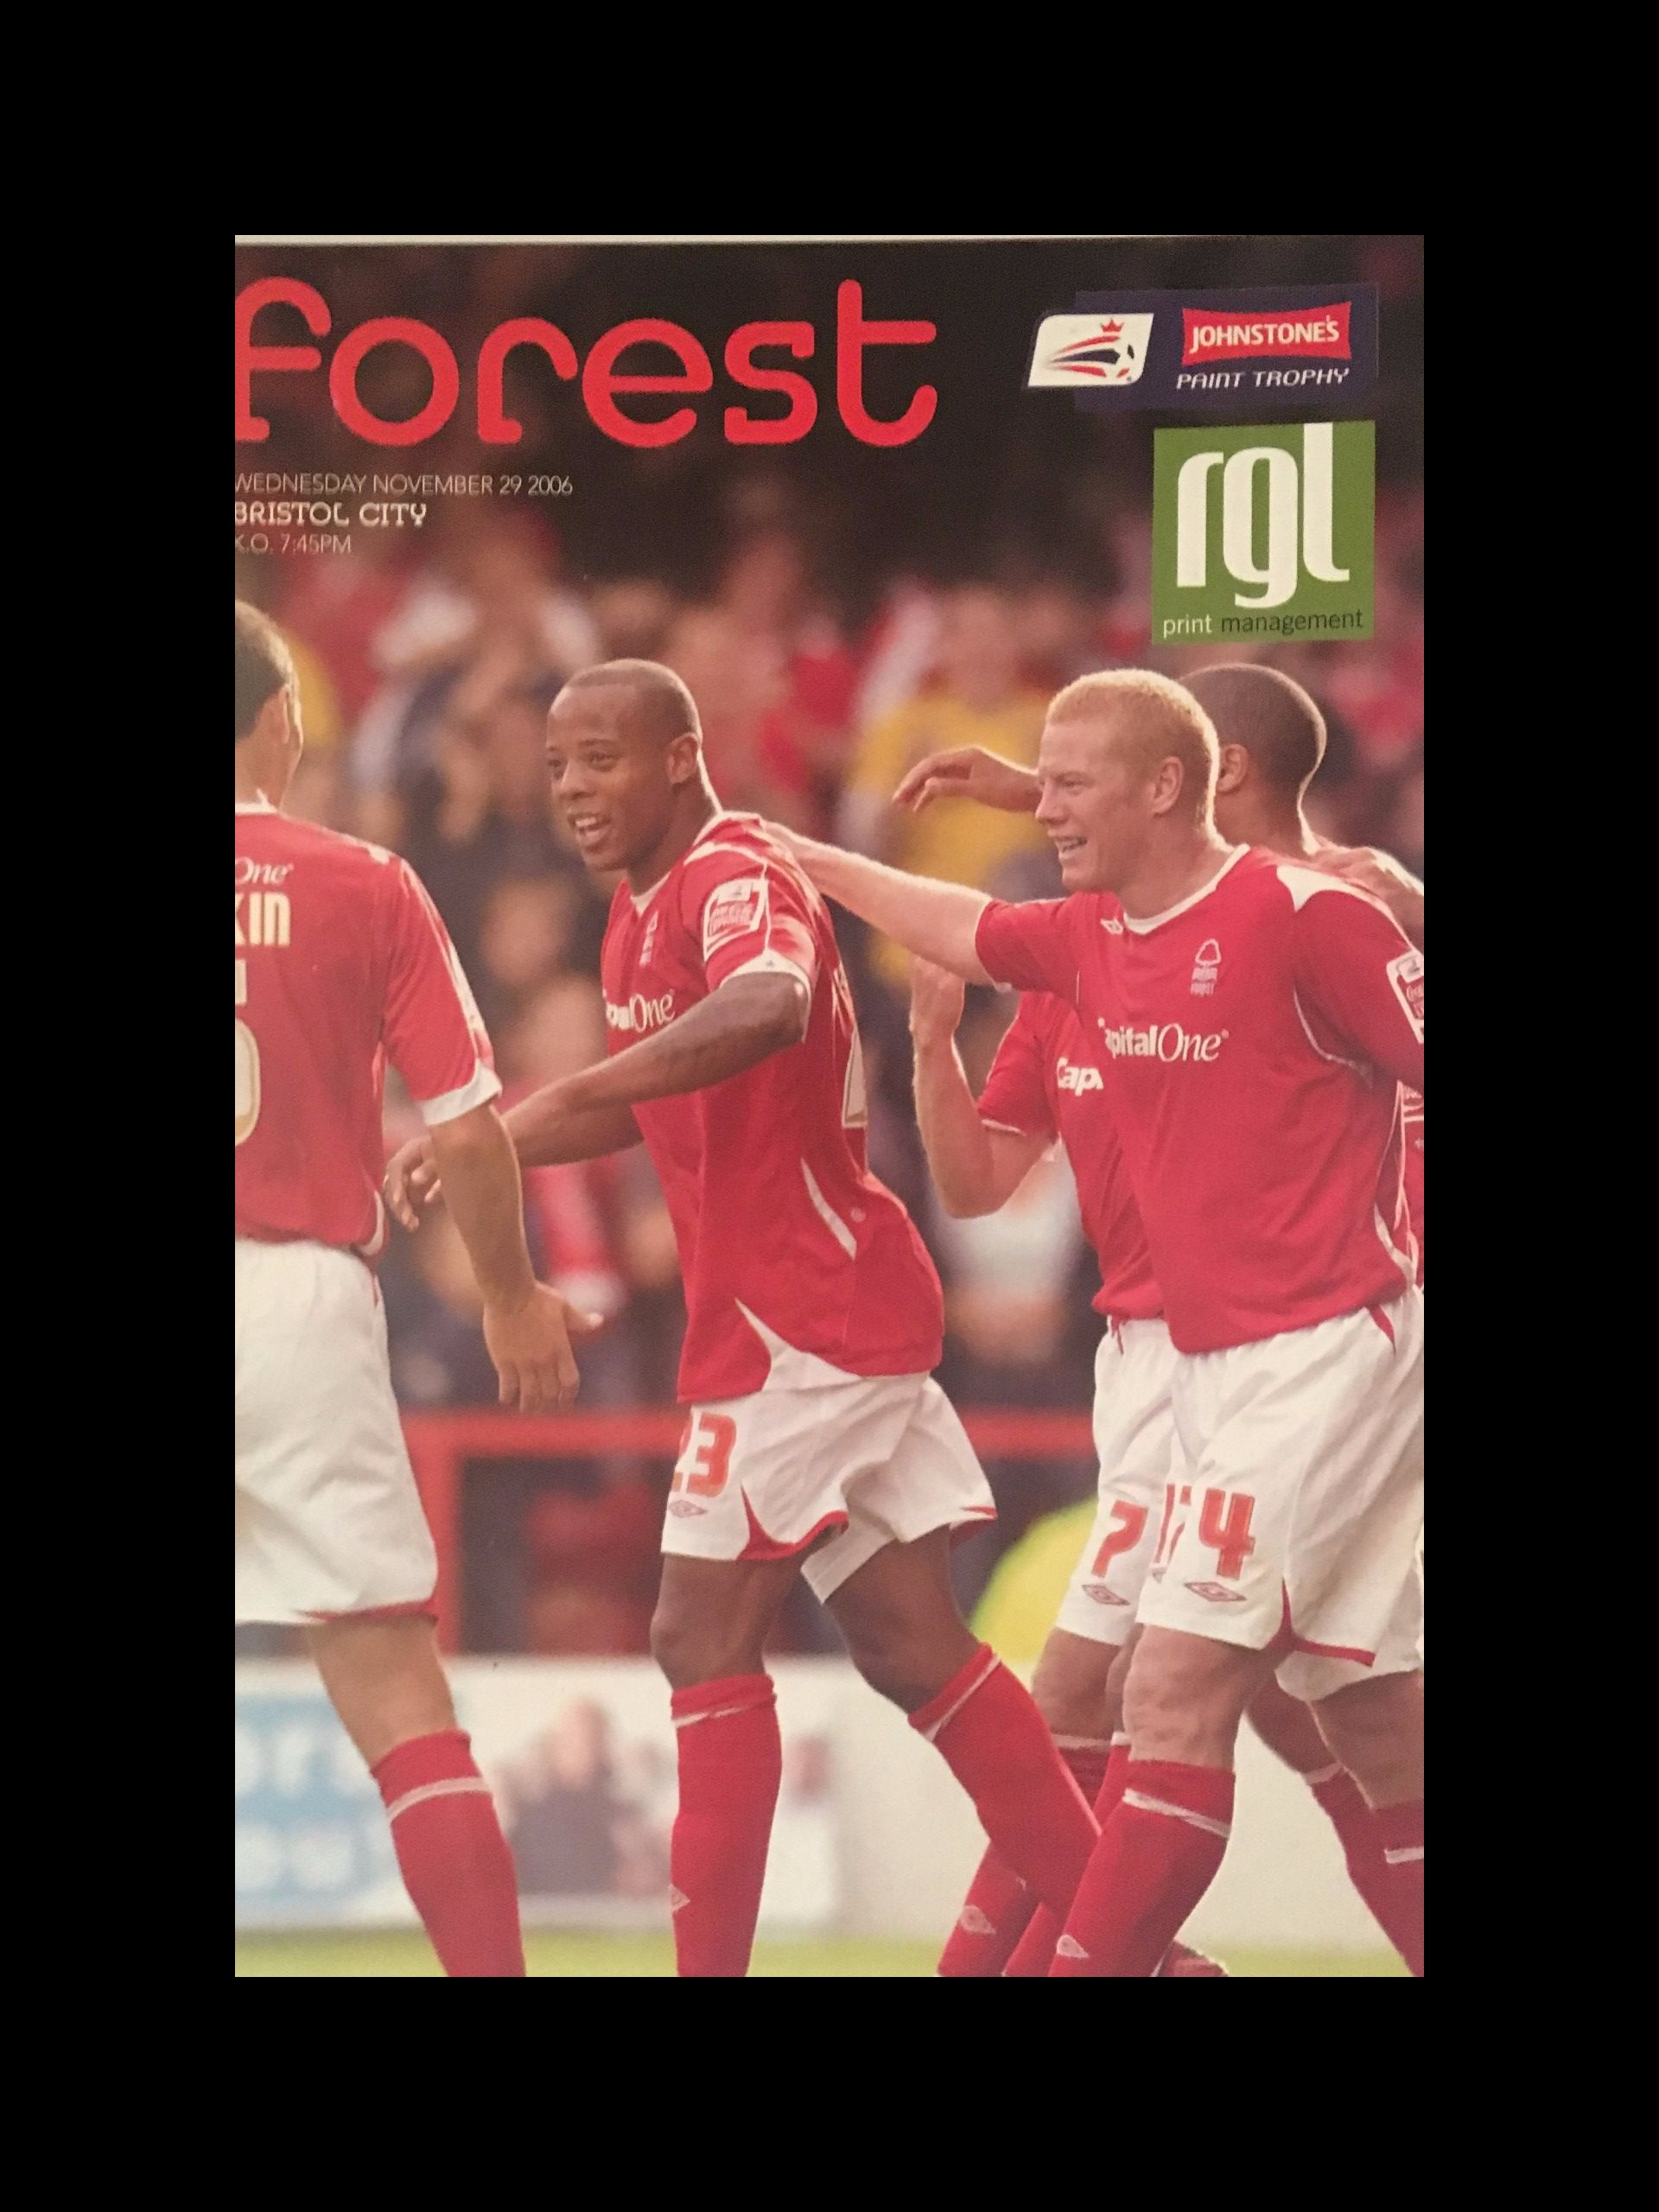 Nottingham Forest v Bristol City 29-11-2006 Programme